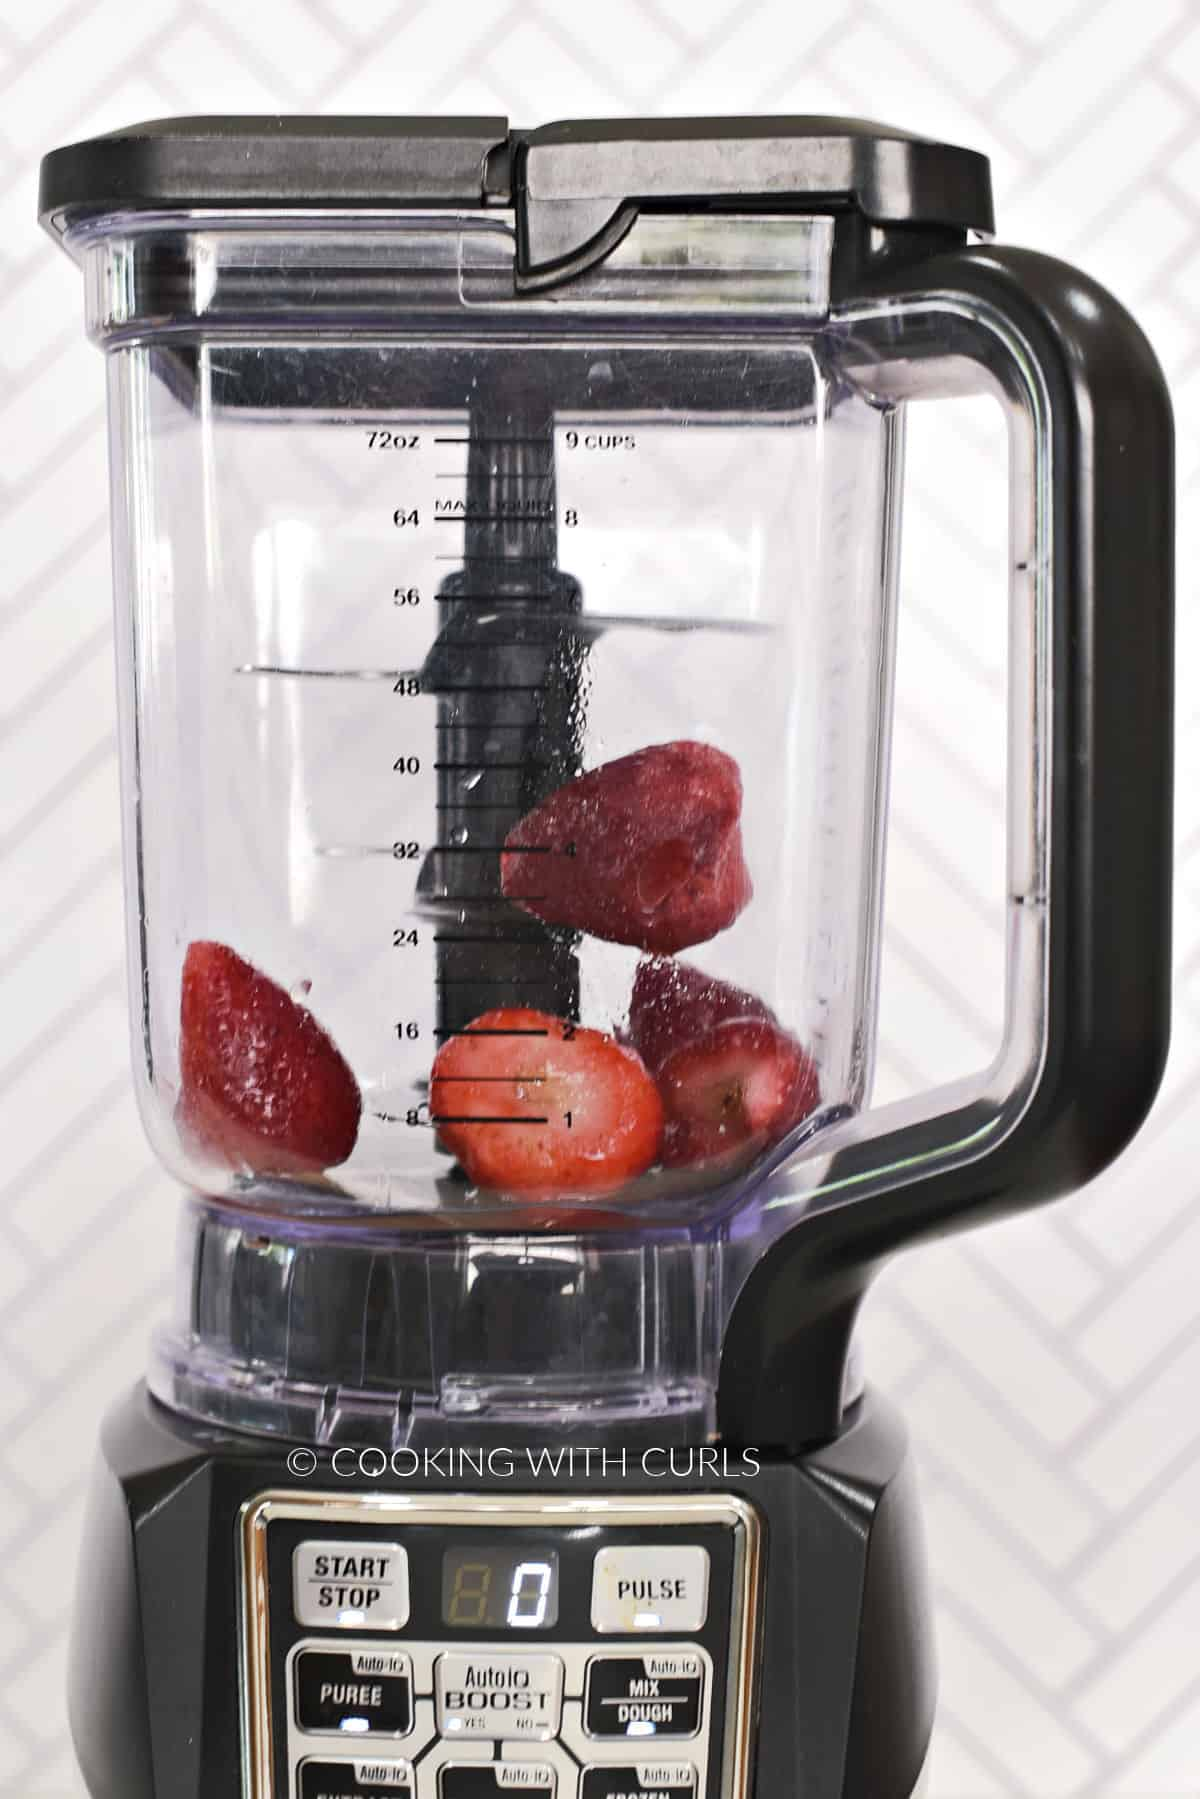 Frozen strawberries, rum, and pineapple juice in a blender.